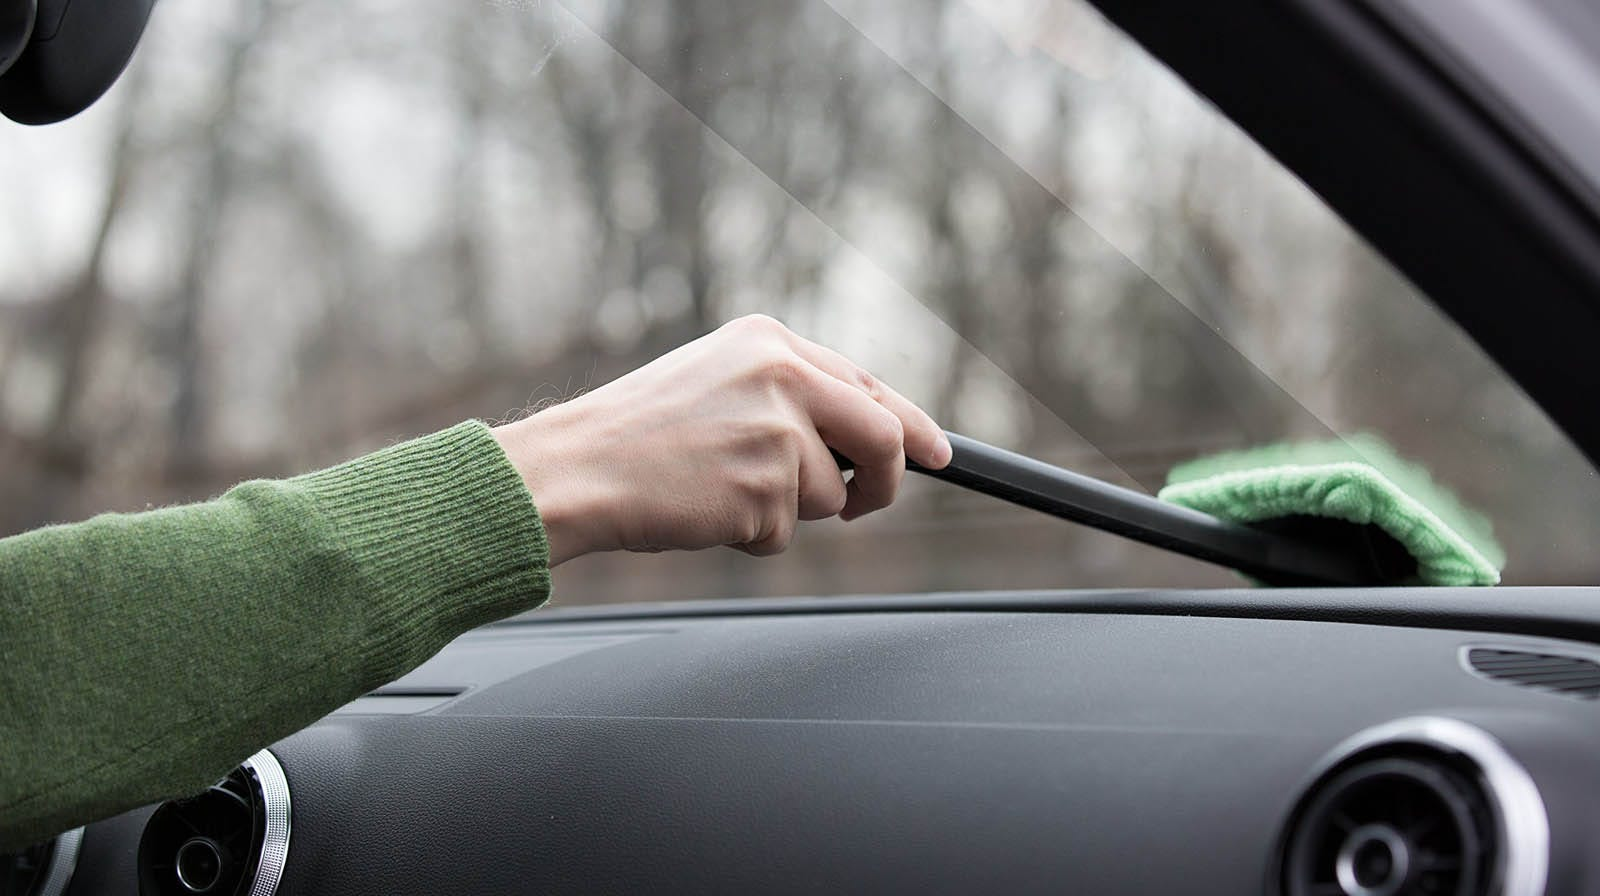 person wiping inside of car windshield with a microfiber EasyWipe cleaner